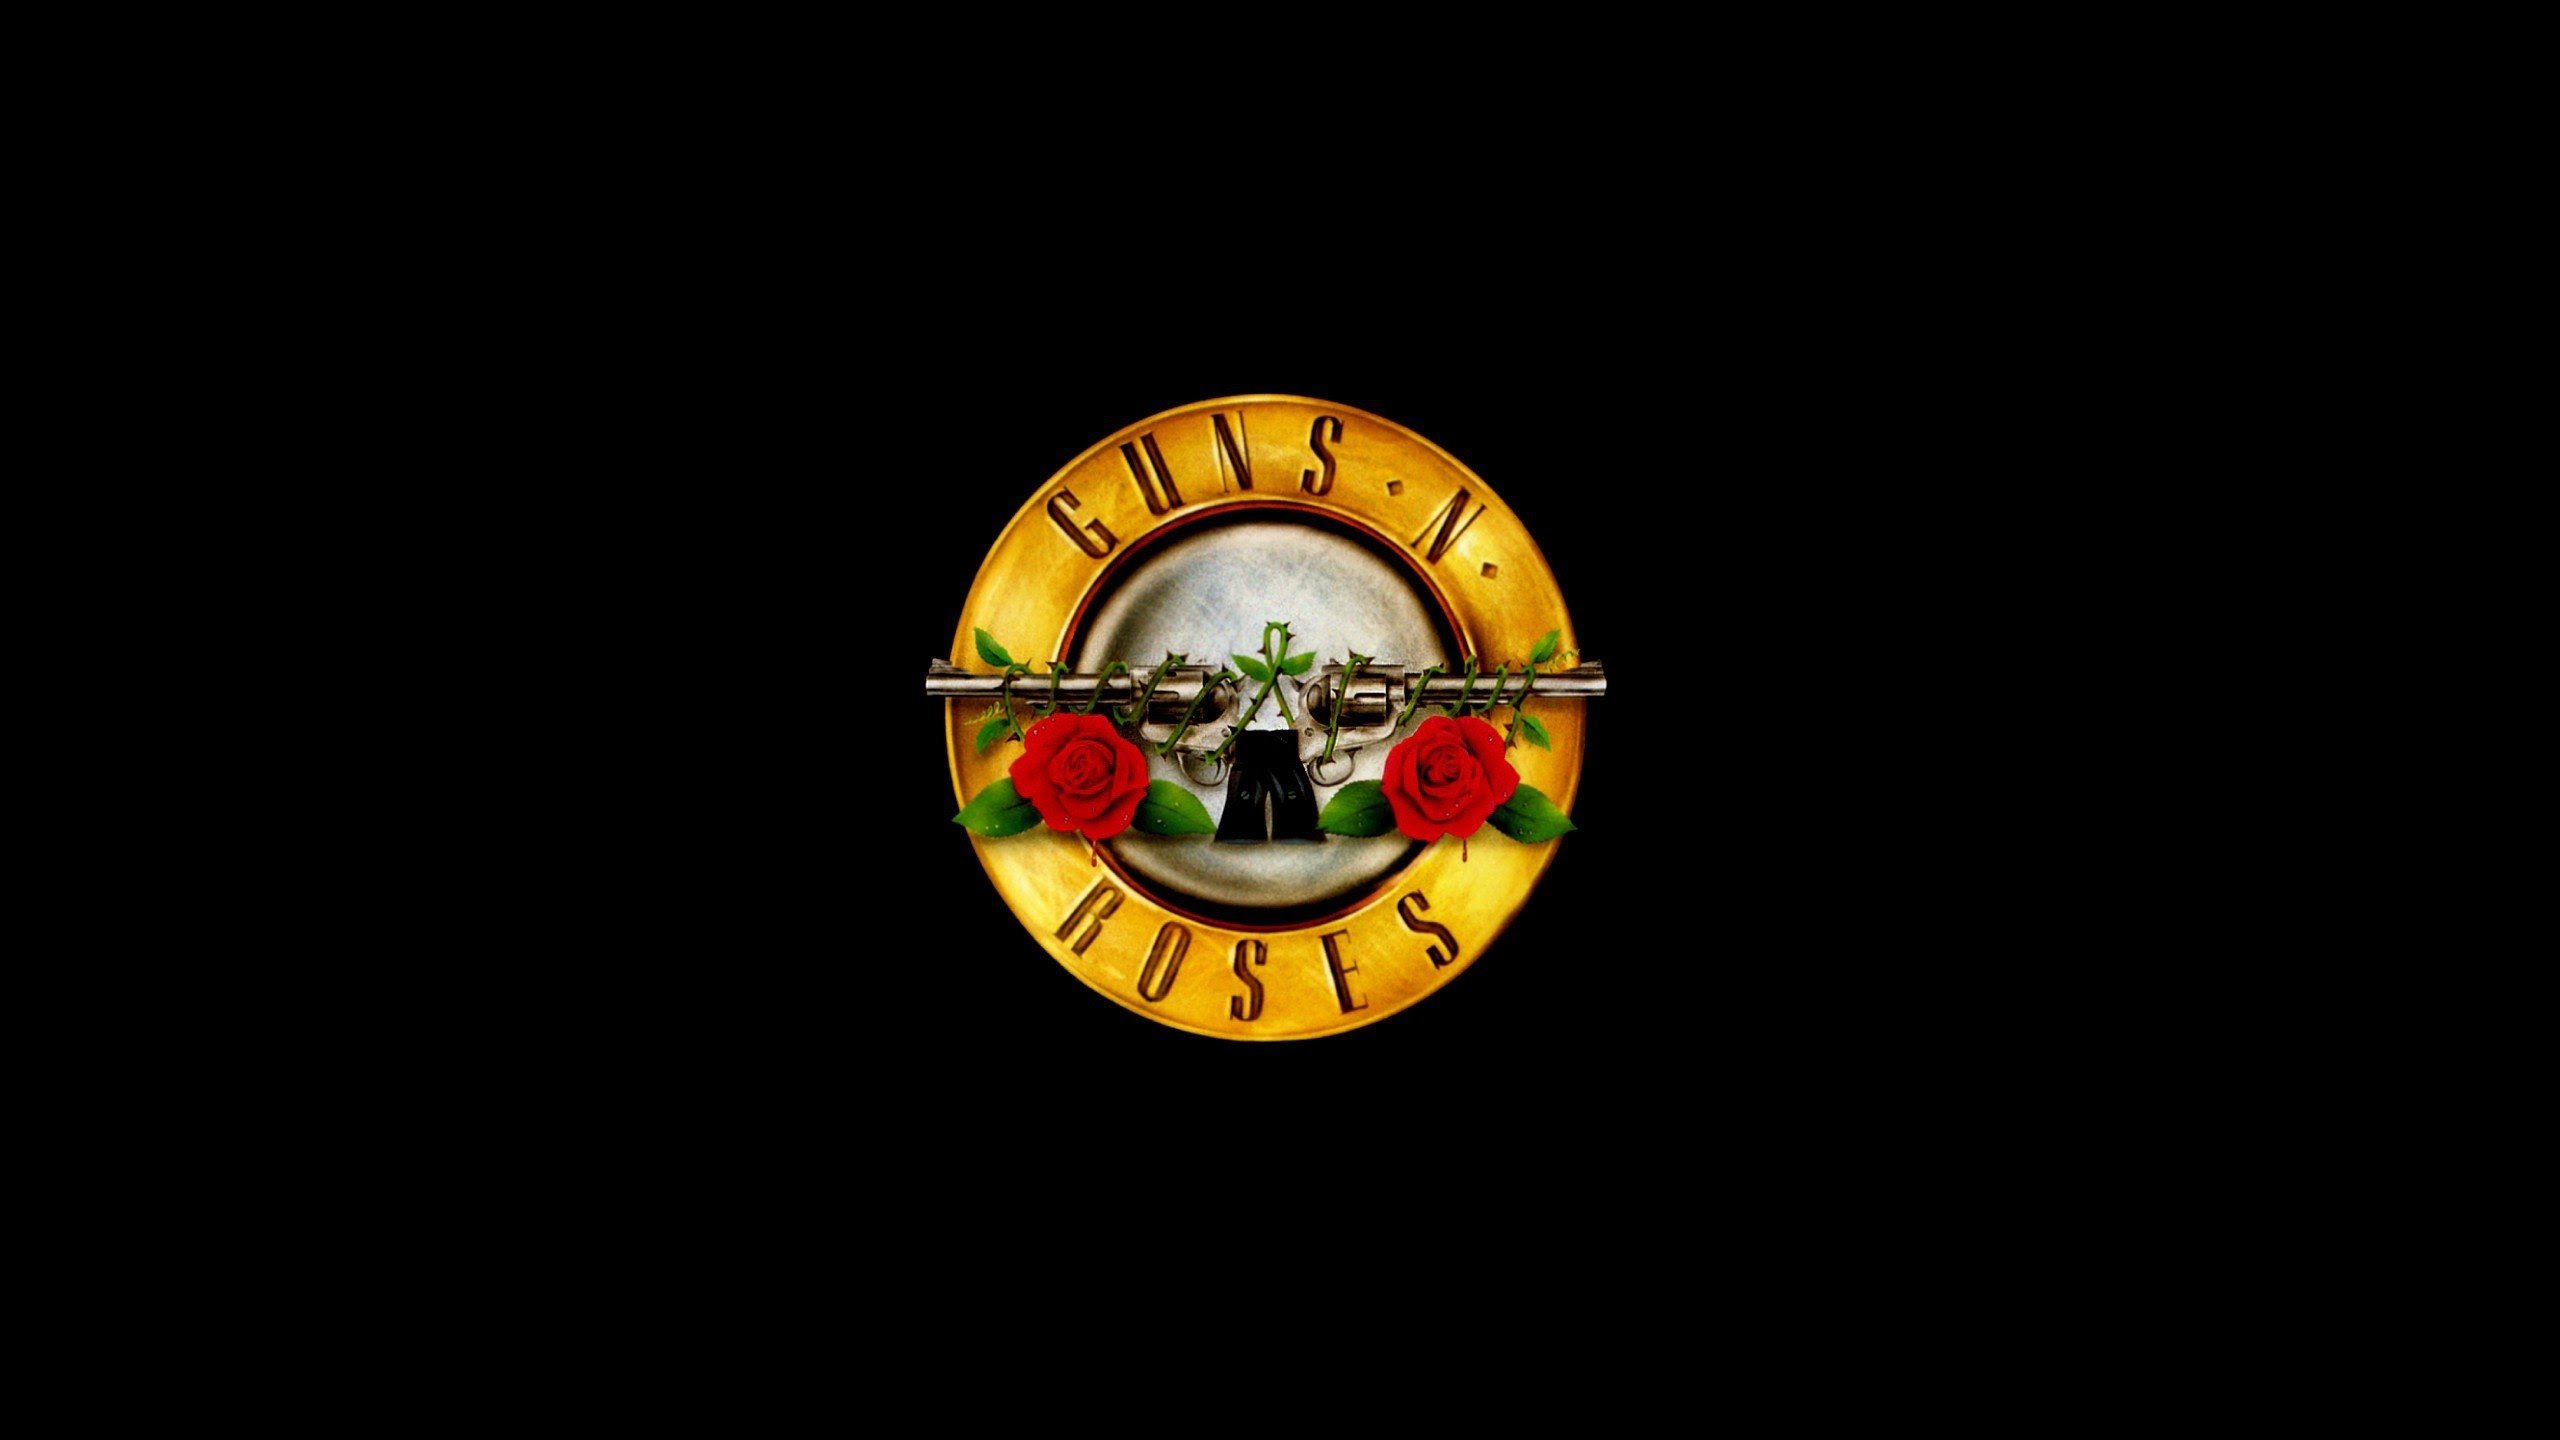 Guns N Roses Wallpapers 70 Images